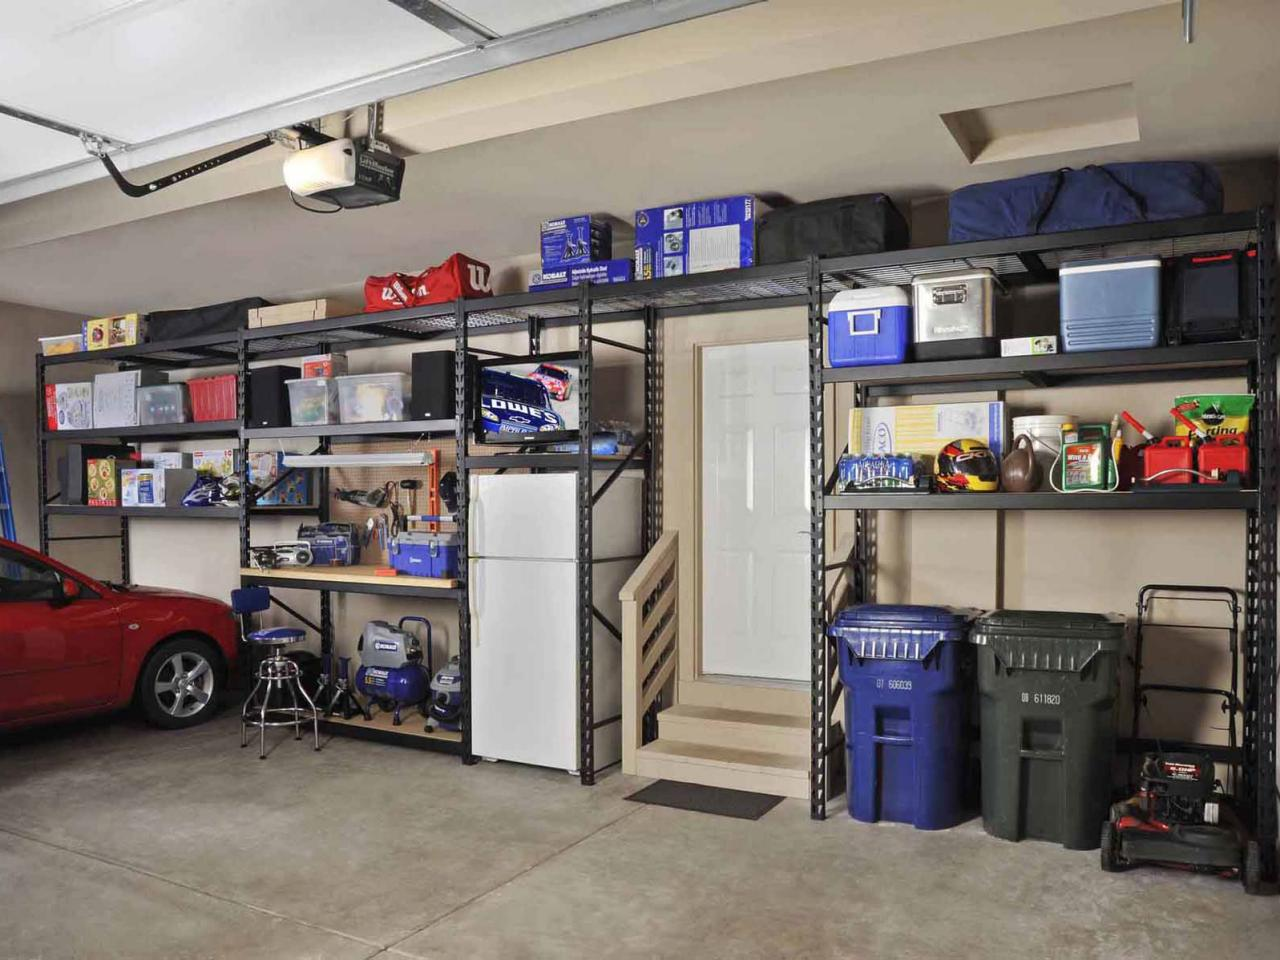 Use Edsal Shelving At Your Garage To Save Your Tools: Awesome Large Edsal Shelving In Gray Made Of Iron For Garage Furniture Ideas